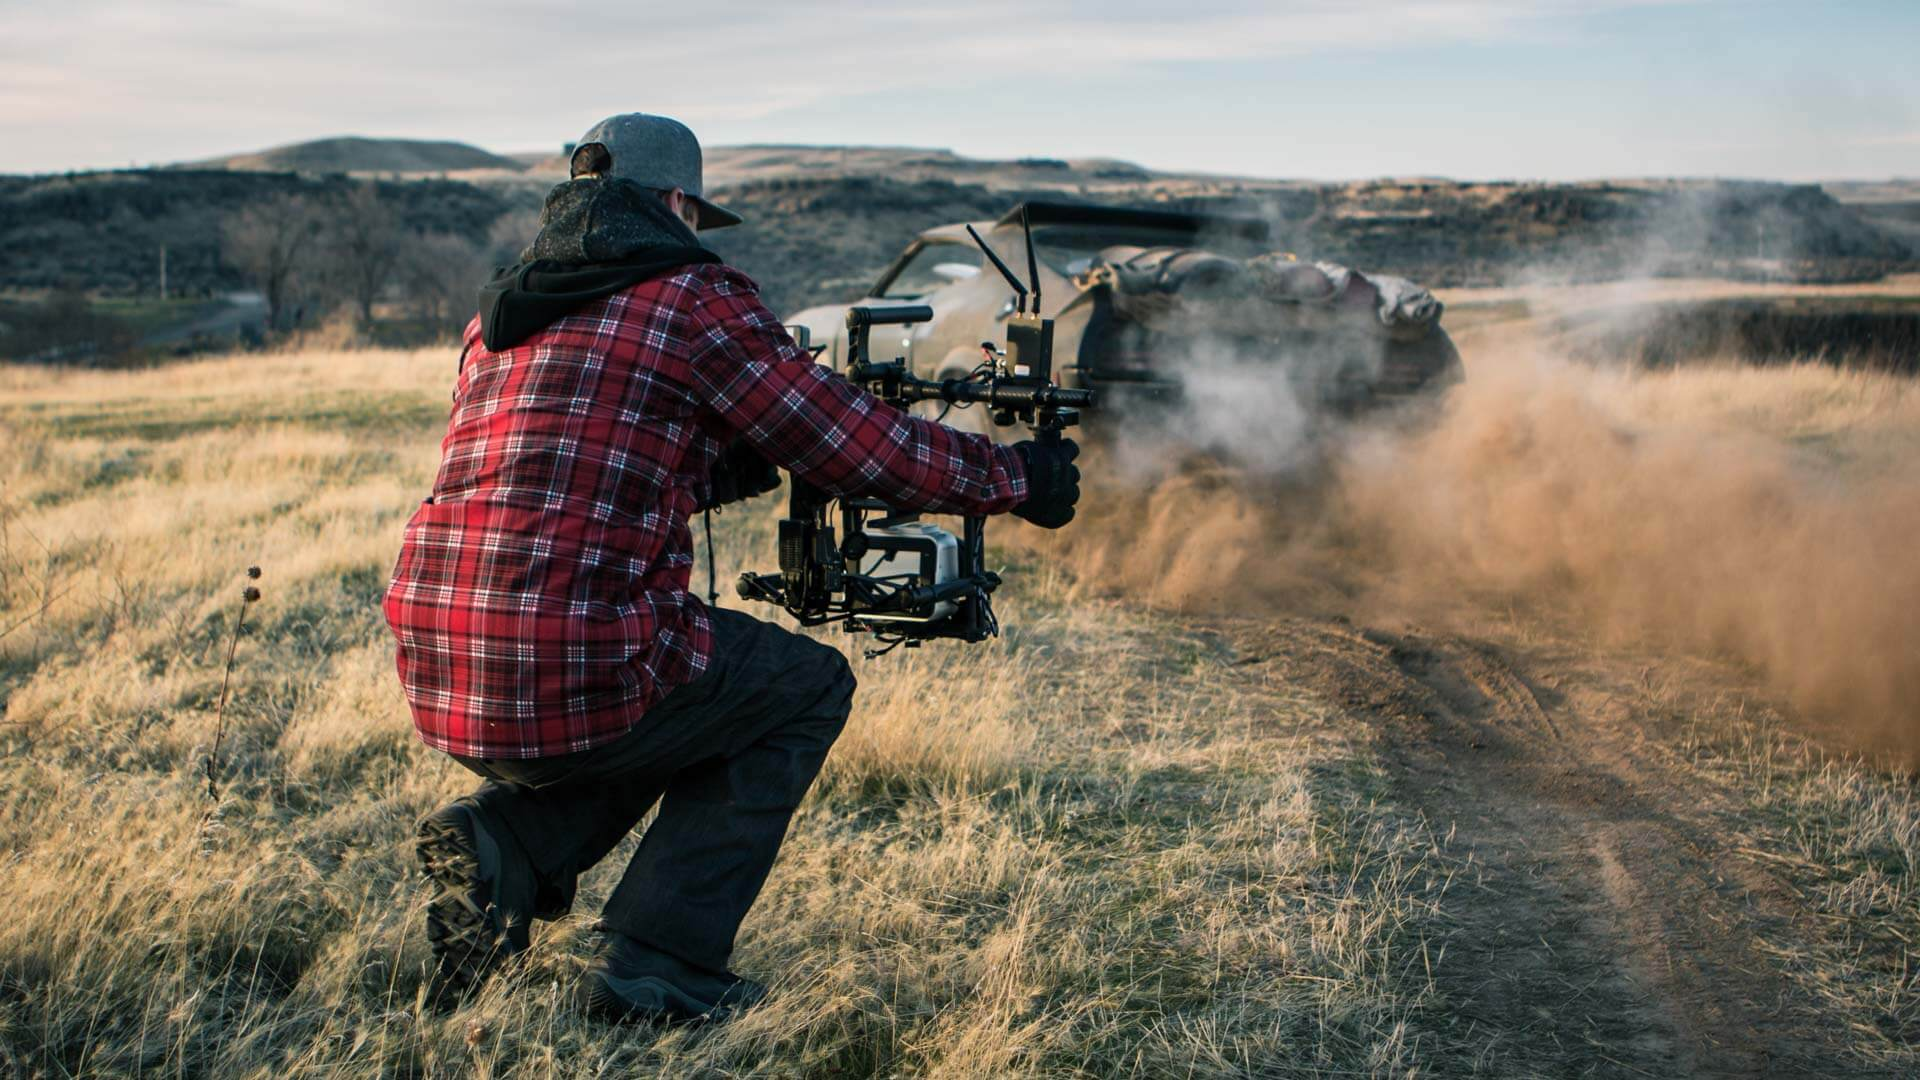 Putting the Blackmagic Design Production Camera 4K to the Test